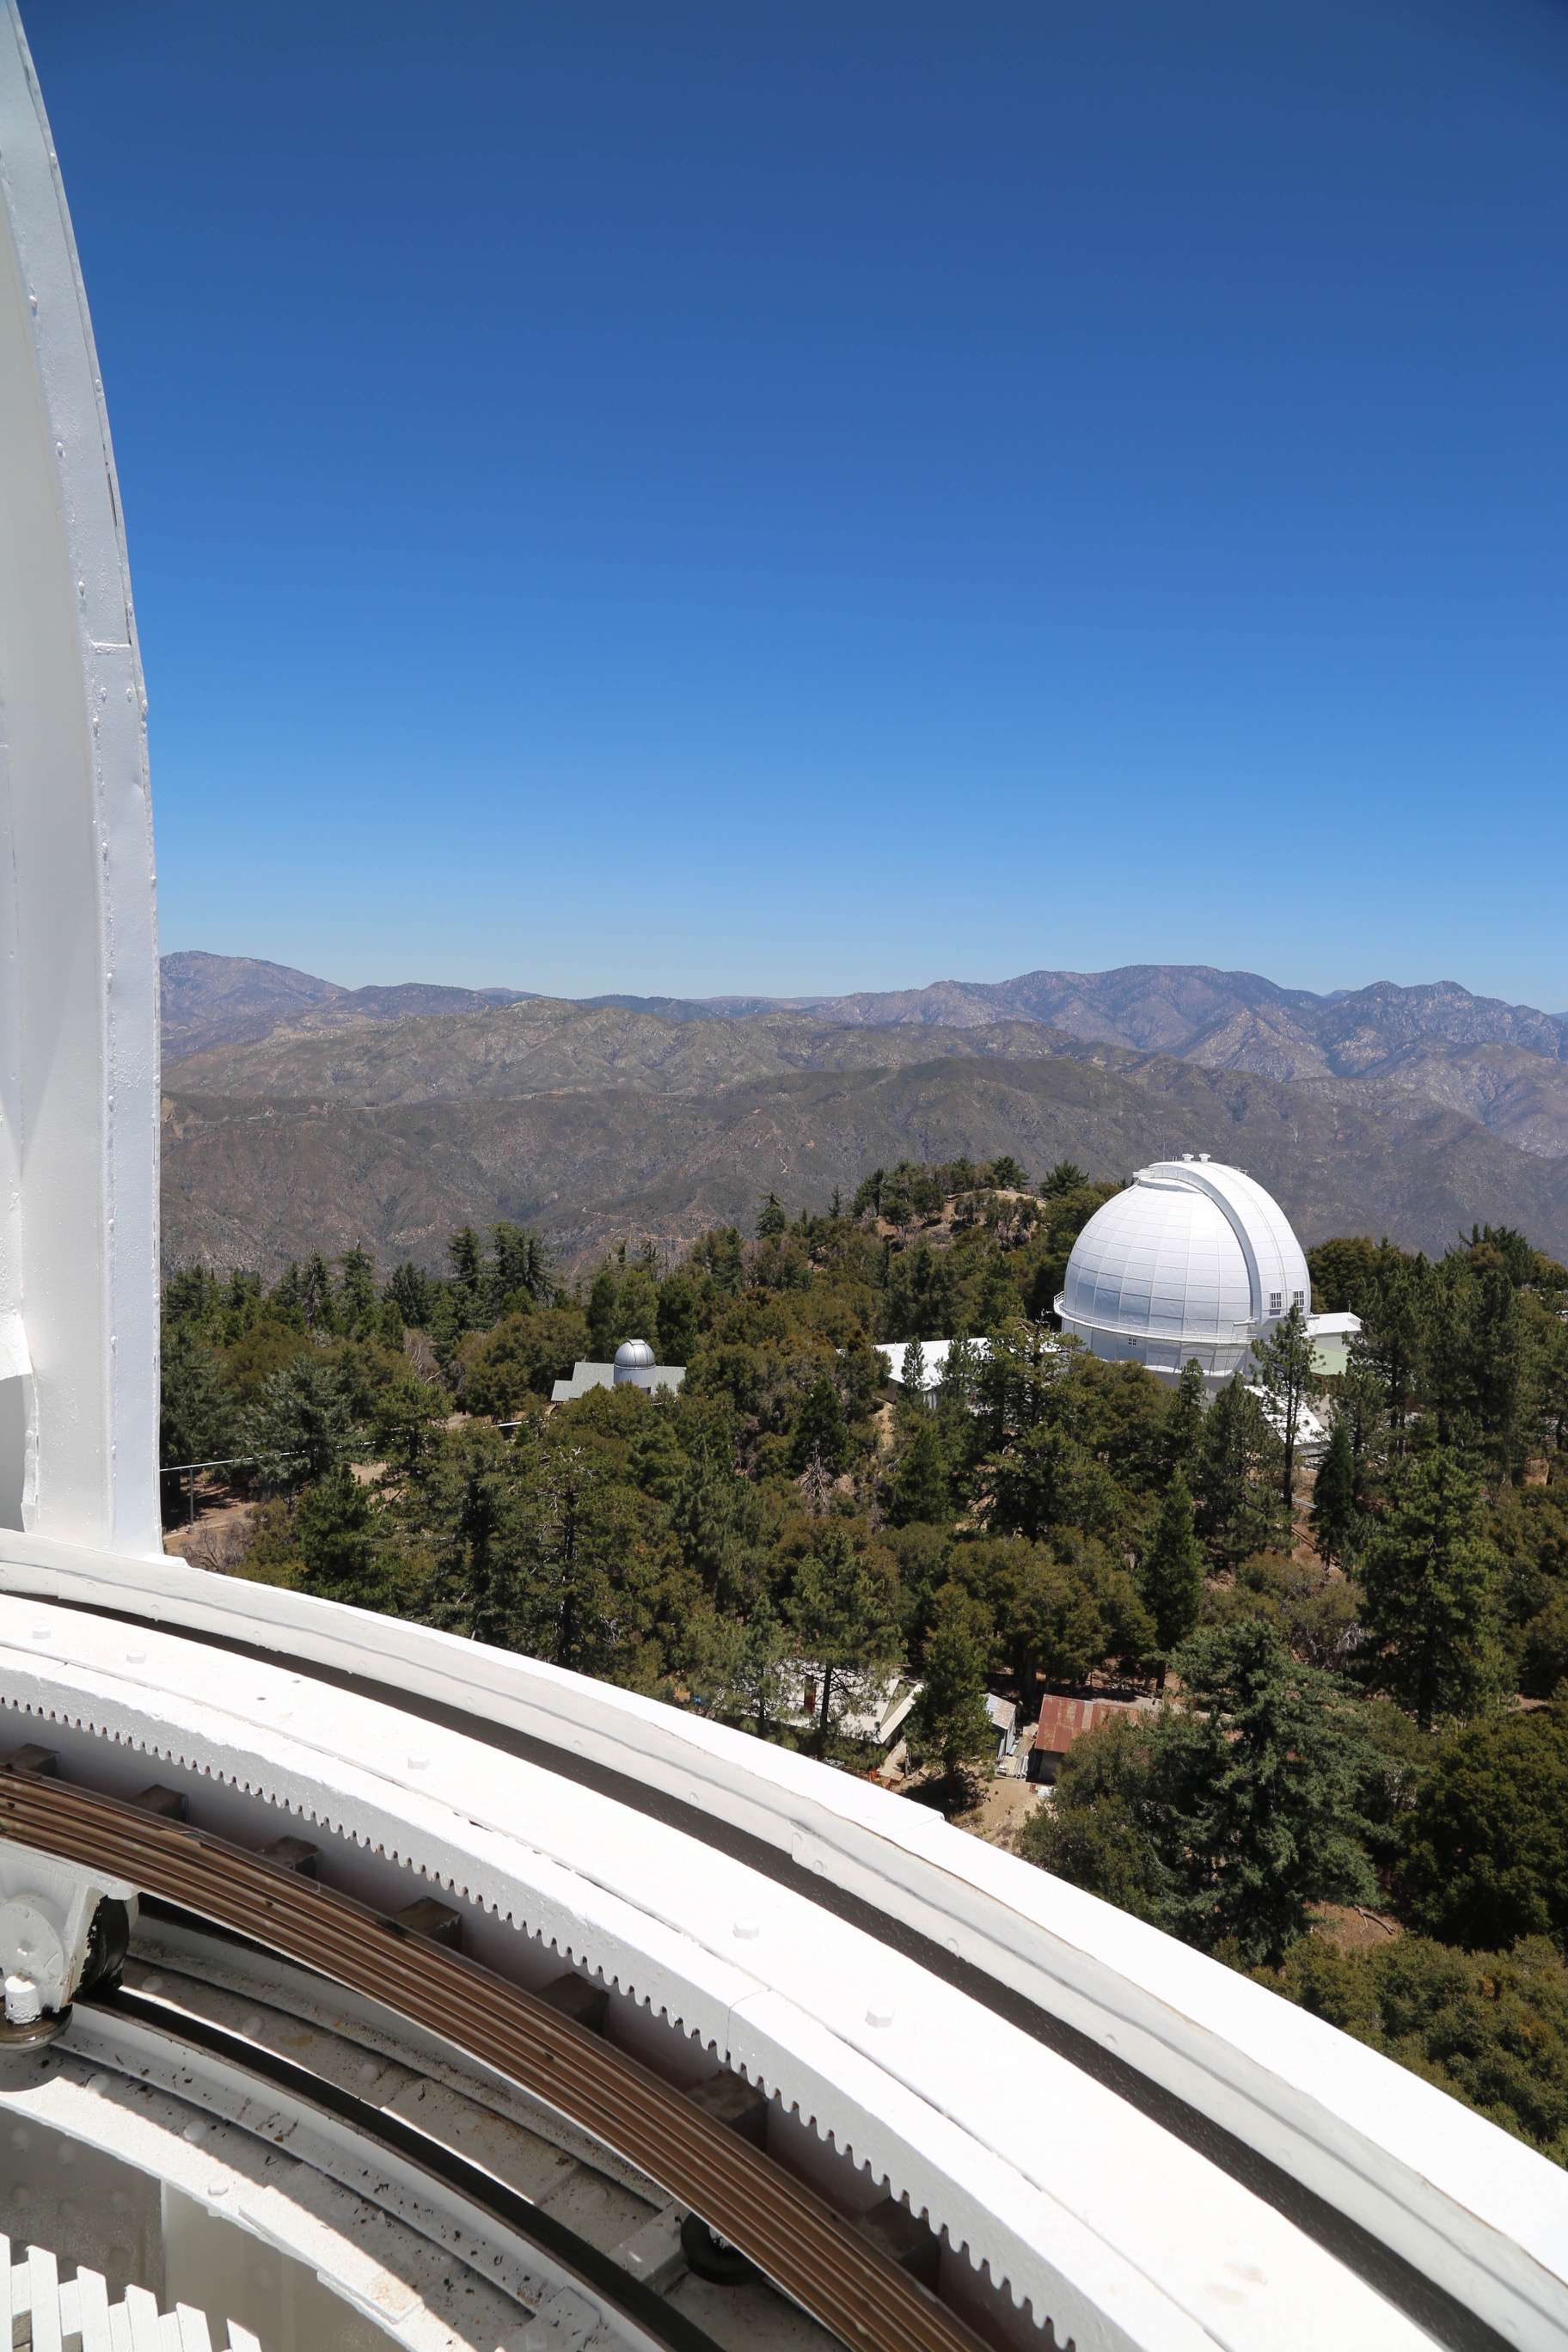 Mt. Wilson's telescopes and observatories are still actively searching the heavens, including some of the most modern astronomical research, such as LIGO and the CHARA array.